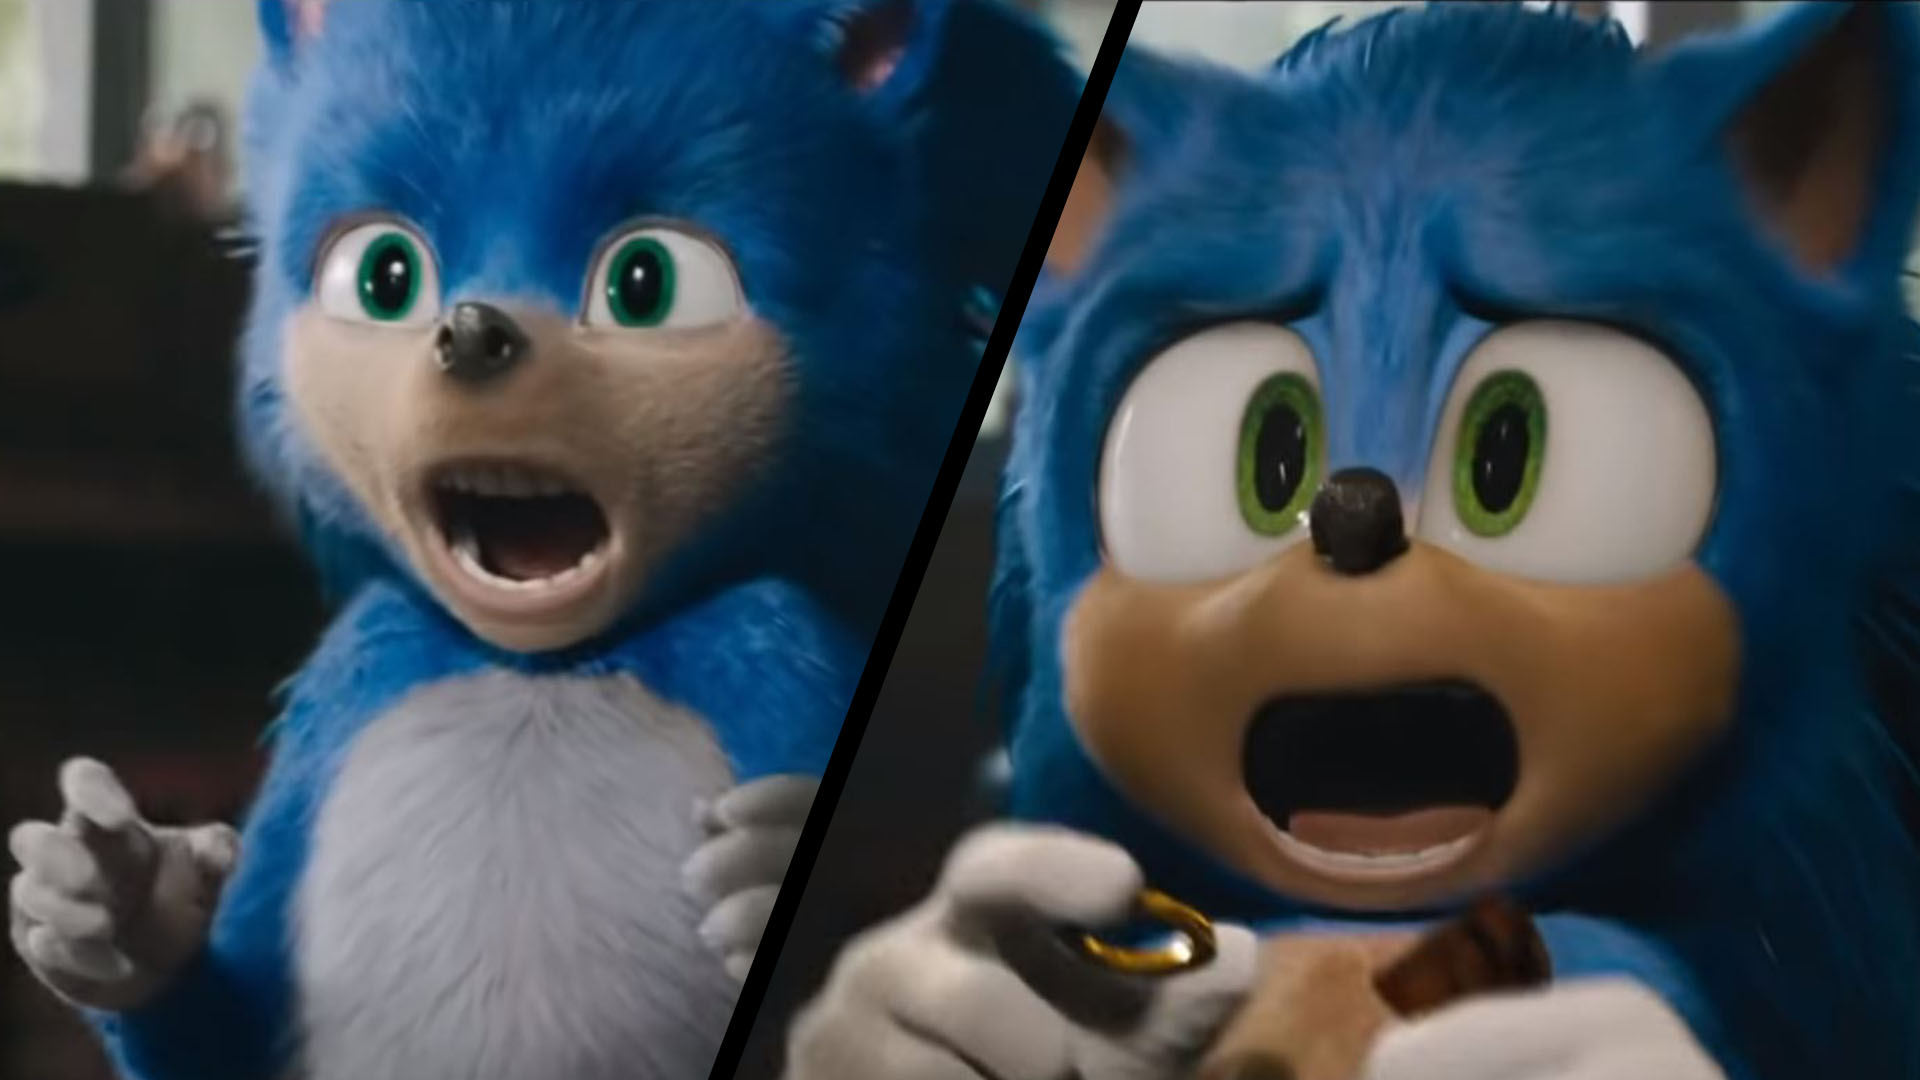 Studio That Redesigned Sonic The Hedgehog Is Shut Down Before Christmas Ladbible